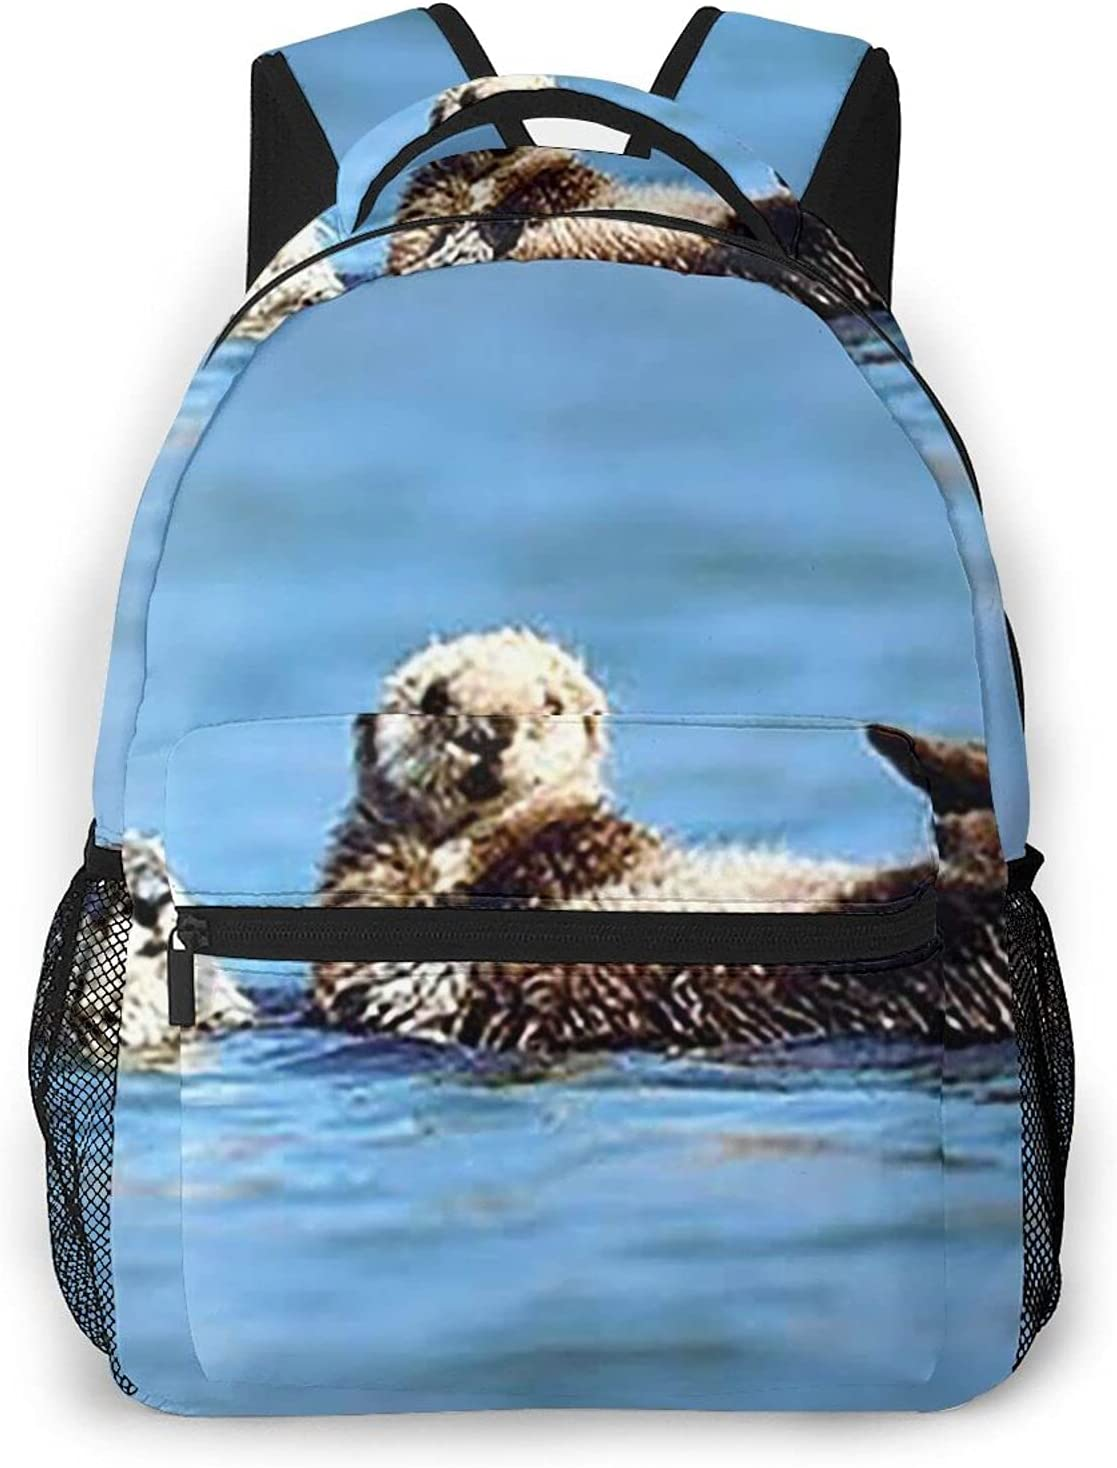 Sea Otter Pup Baby Travel Rucksack Backpa Daypack Laptop Tucson Max 67% OFF Mall Student